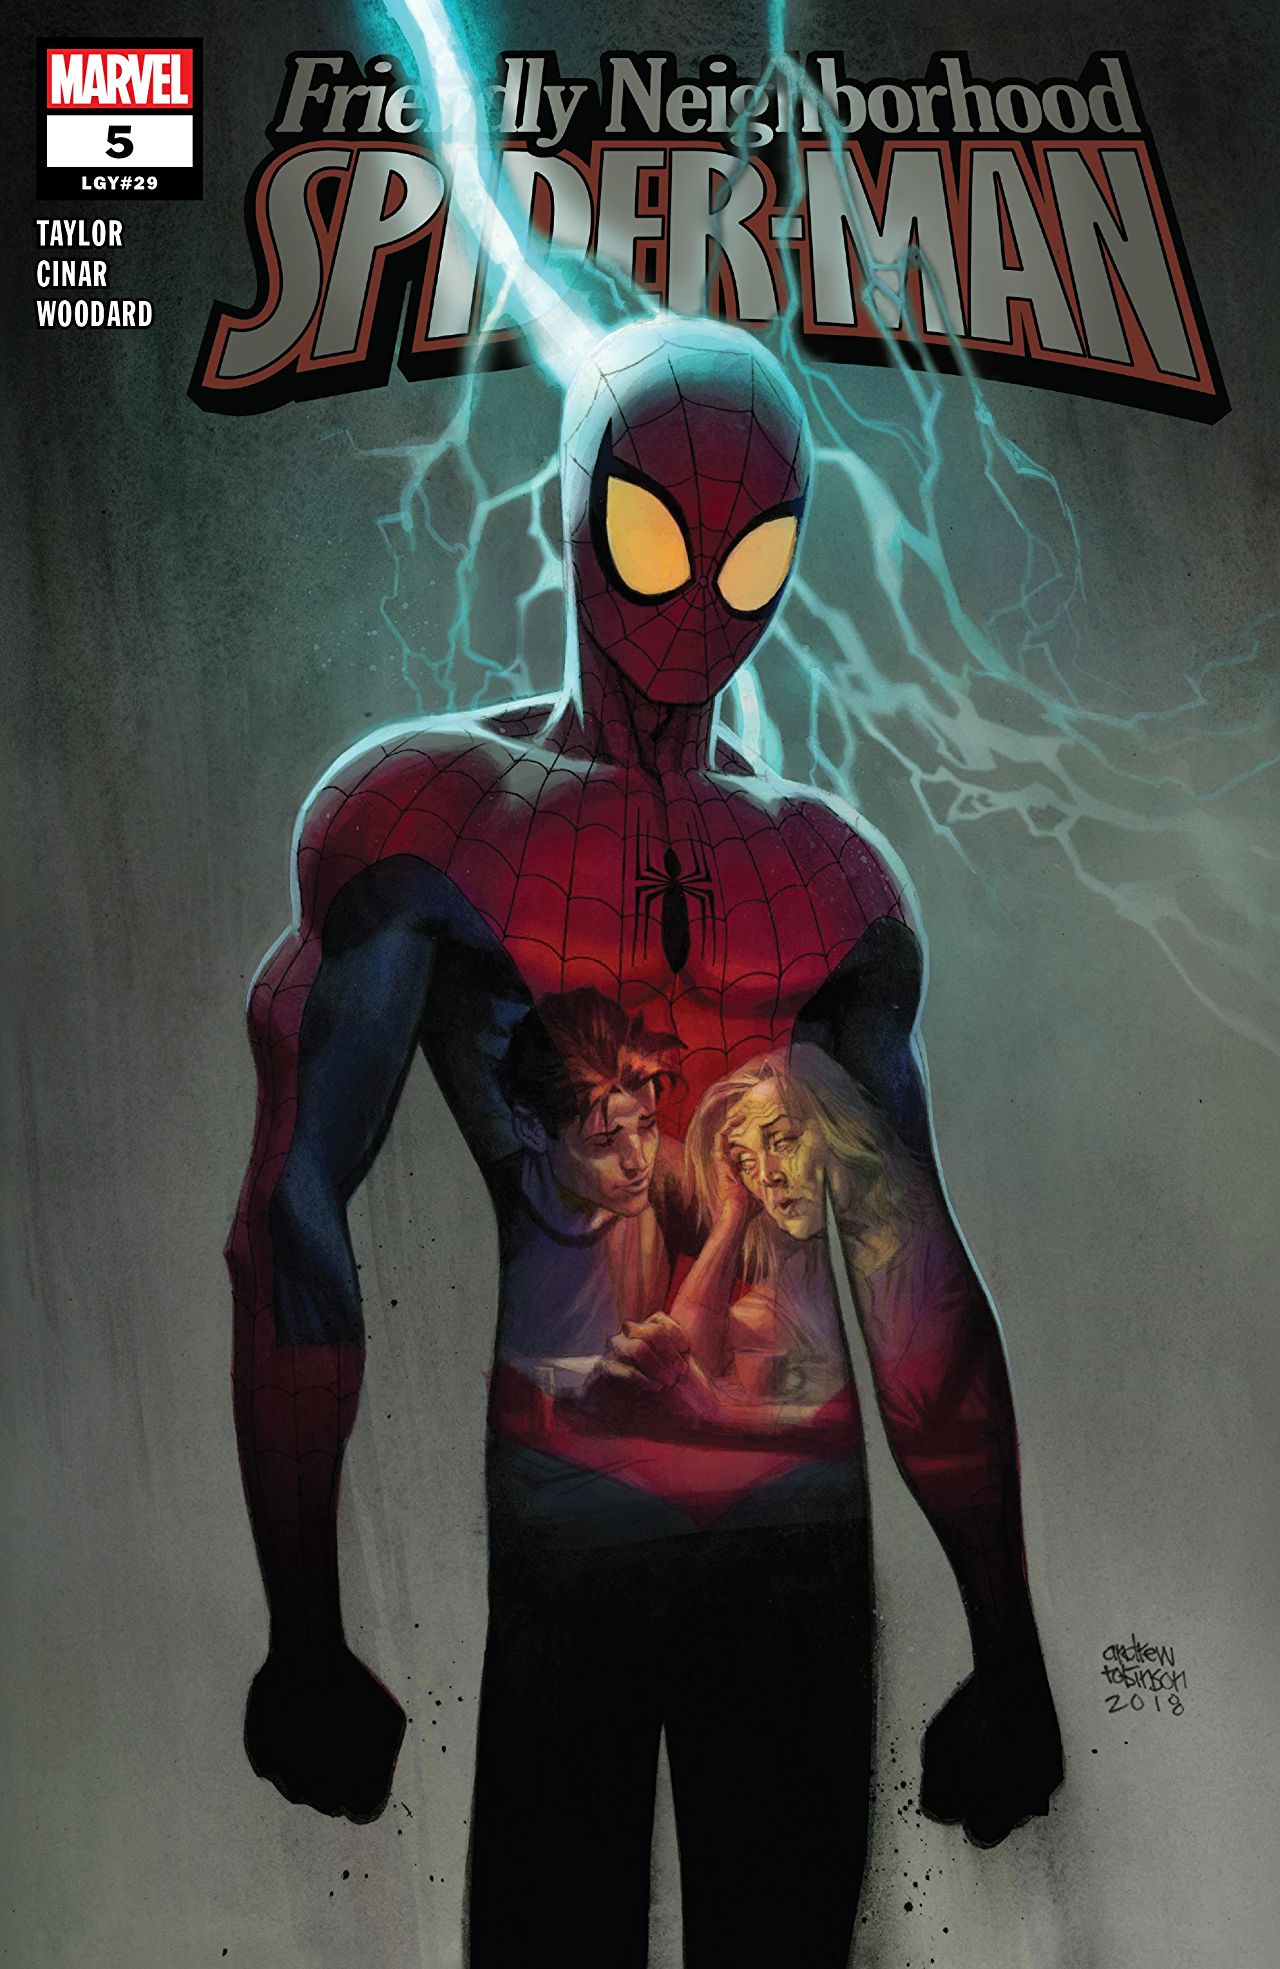 Marvel Preview: Friendly Neighborhood Spider-Man #5